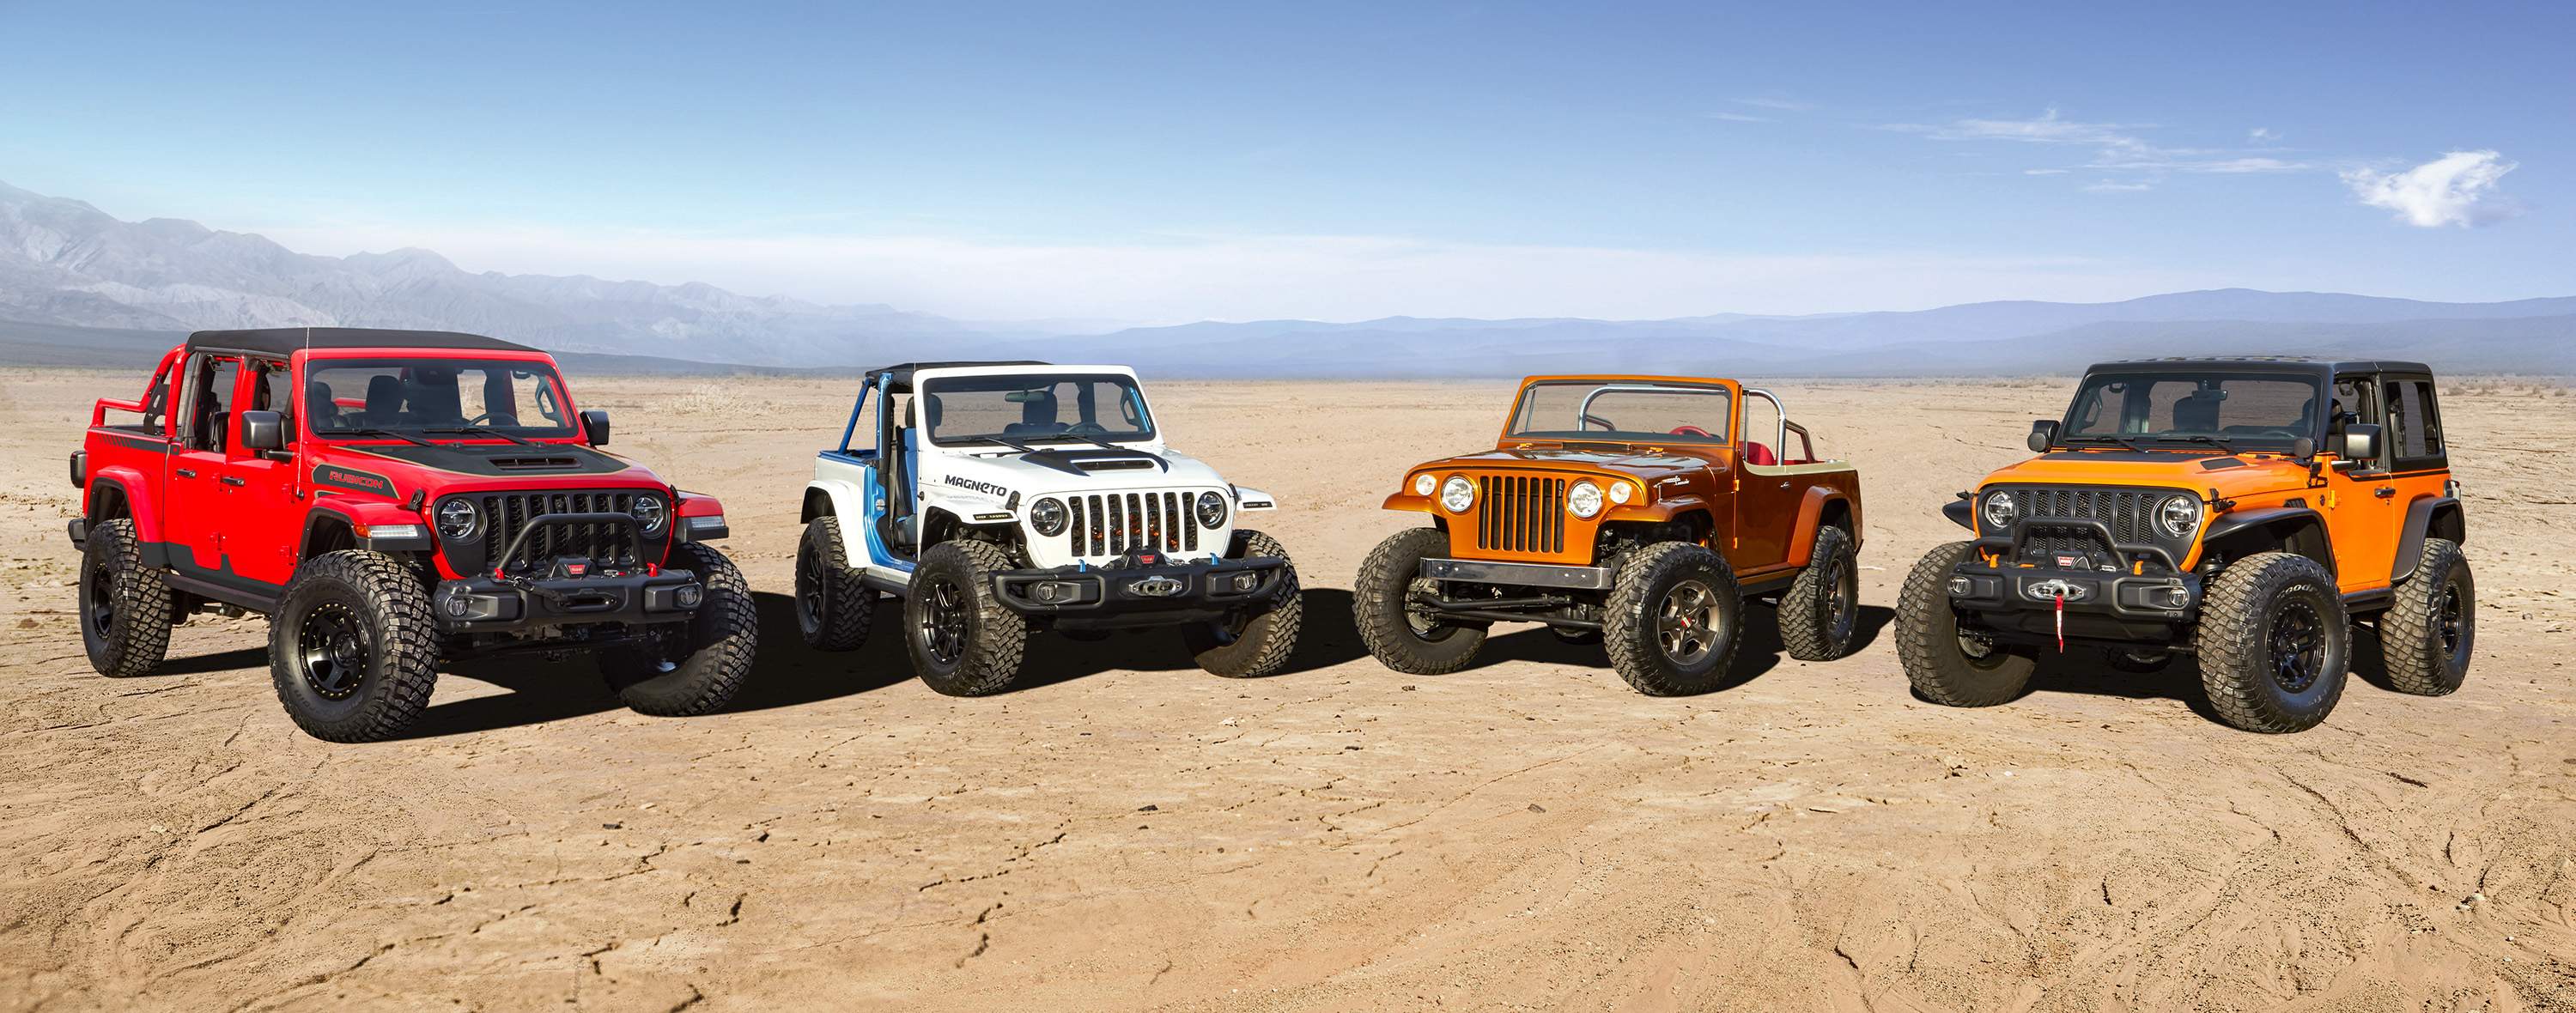 2021 Easter Jeep Safari Jeep concept vehicles